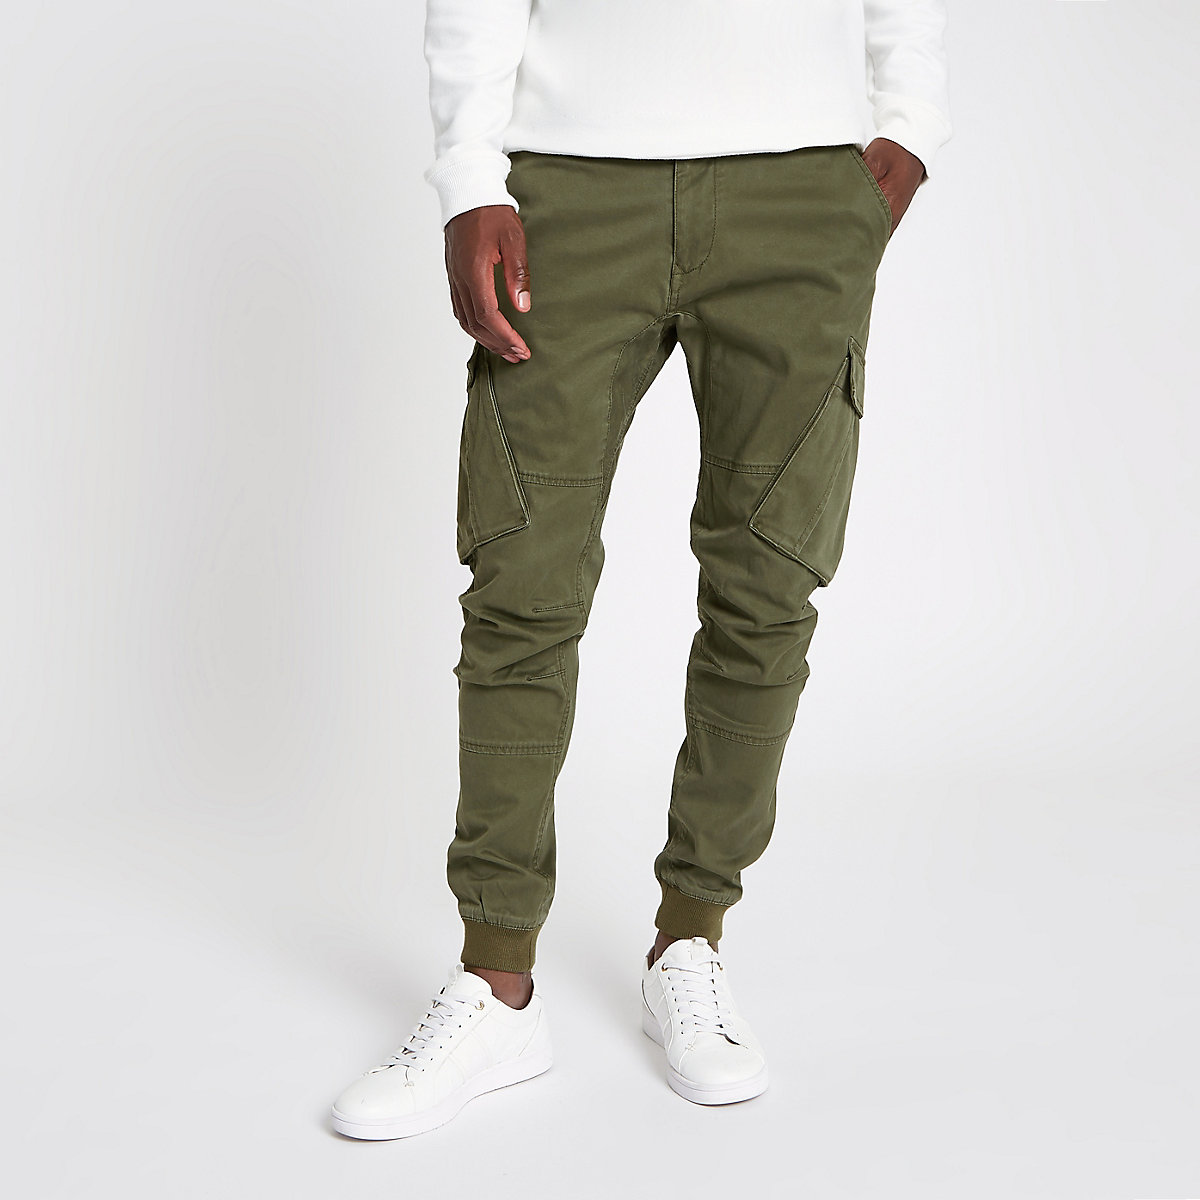 0b95495cdc1 Khaki green tapered cargo trousers - Casual Trousers - Trousers - men